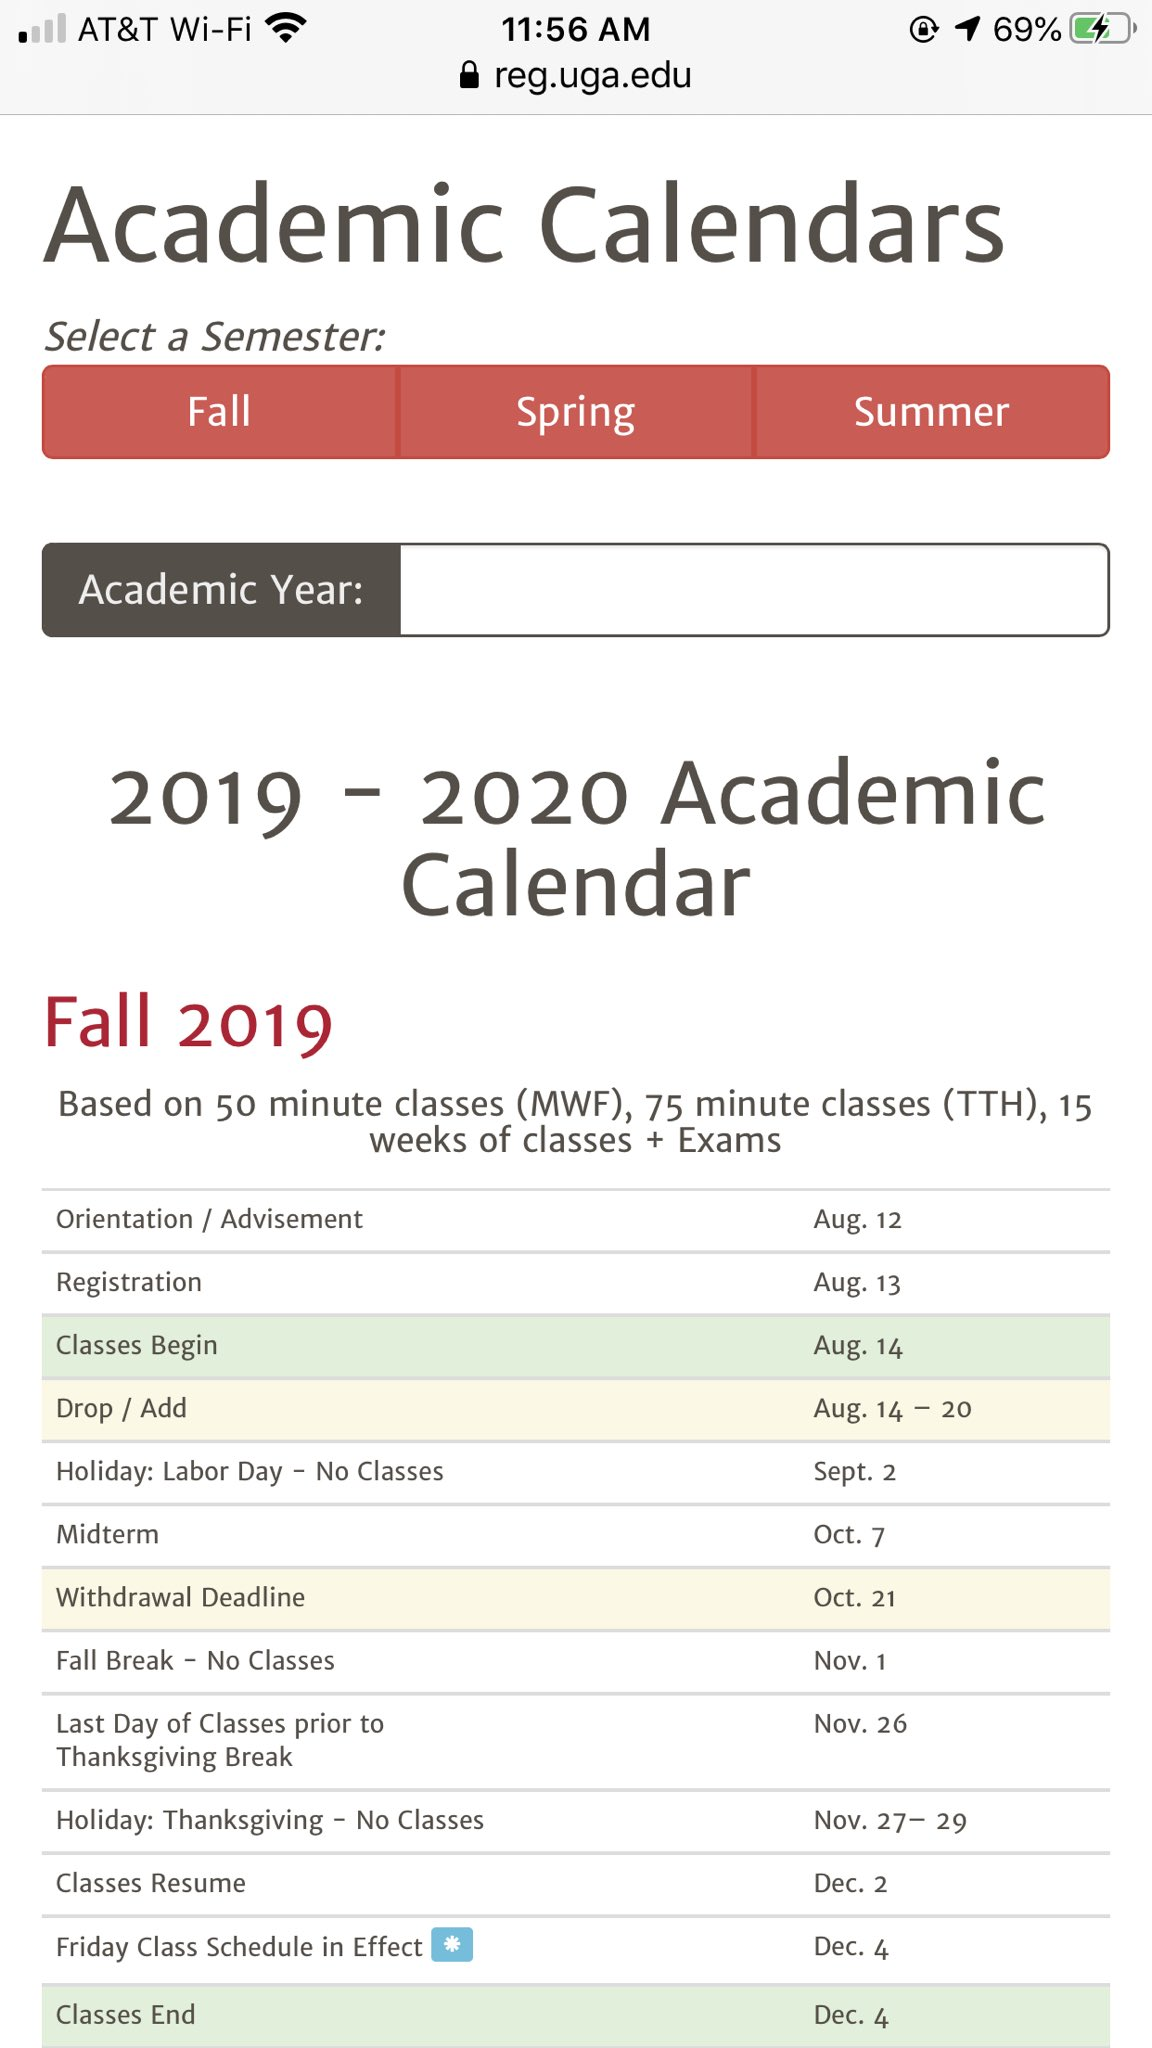 Uga 2022 Calendar.Dr Janet Frick On Twitter Me Watching The Universityofga Registrar S Website Which Just Yesterday Had The 2020 2021 Academic Calendar Visible And Unchanged This Morning It S Gone Https T Co Wbgyxbhkbt Https T Co Gzbu42j9ar